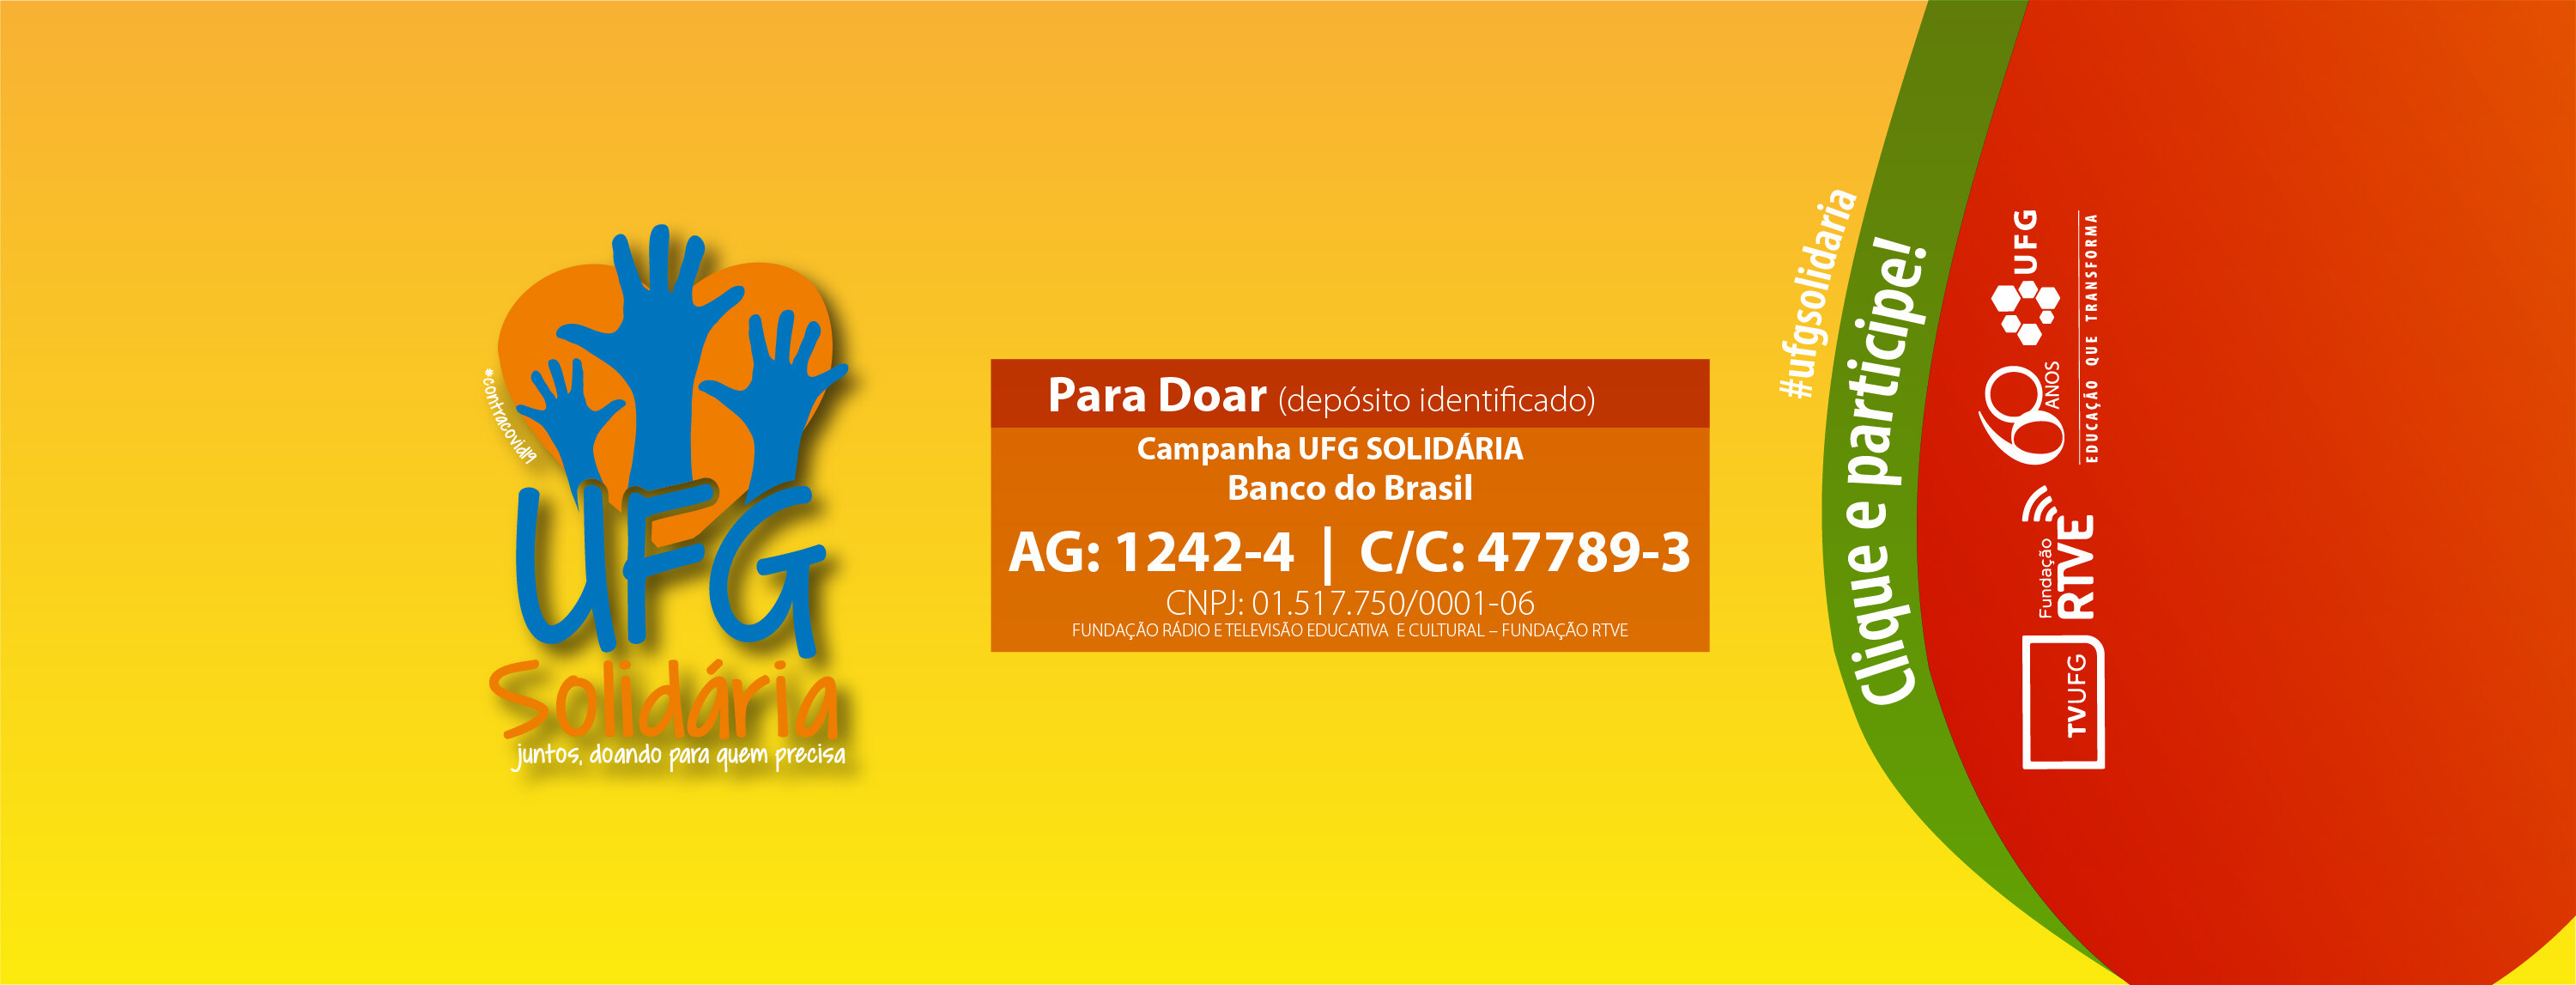 UFG Solidária Banner